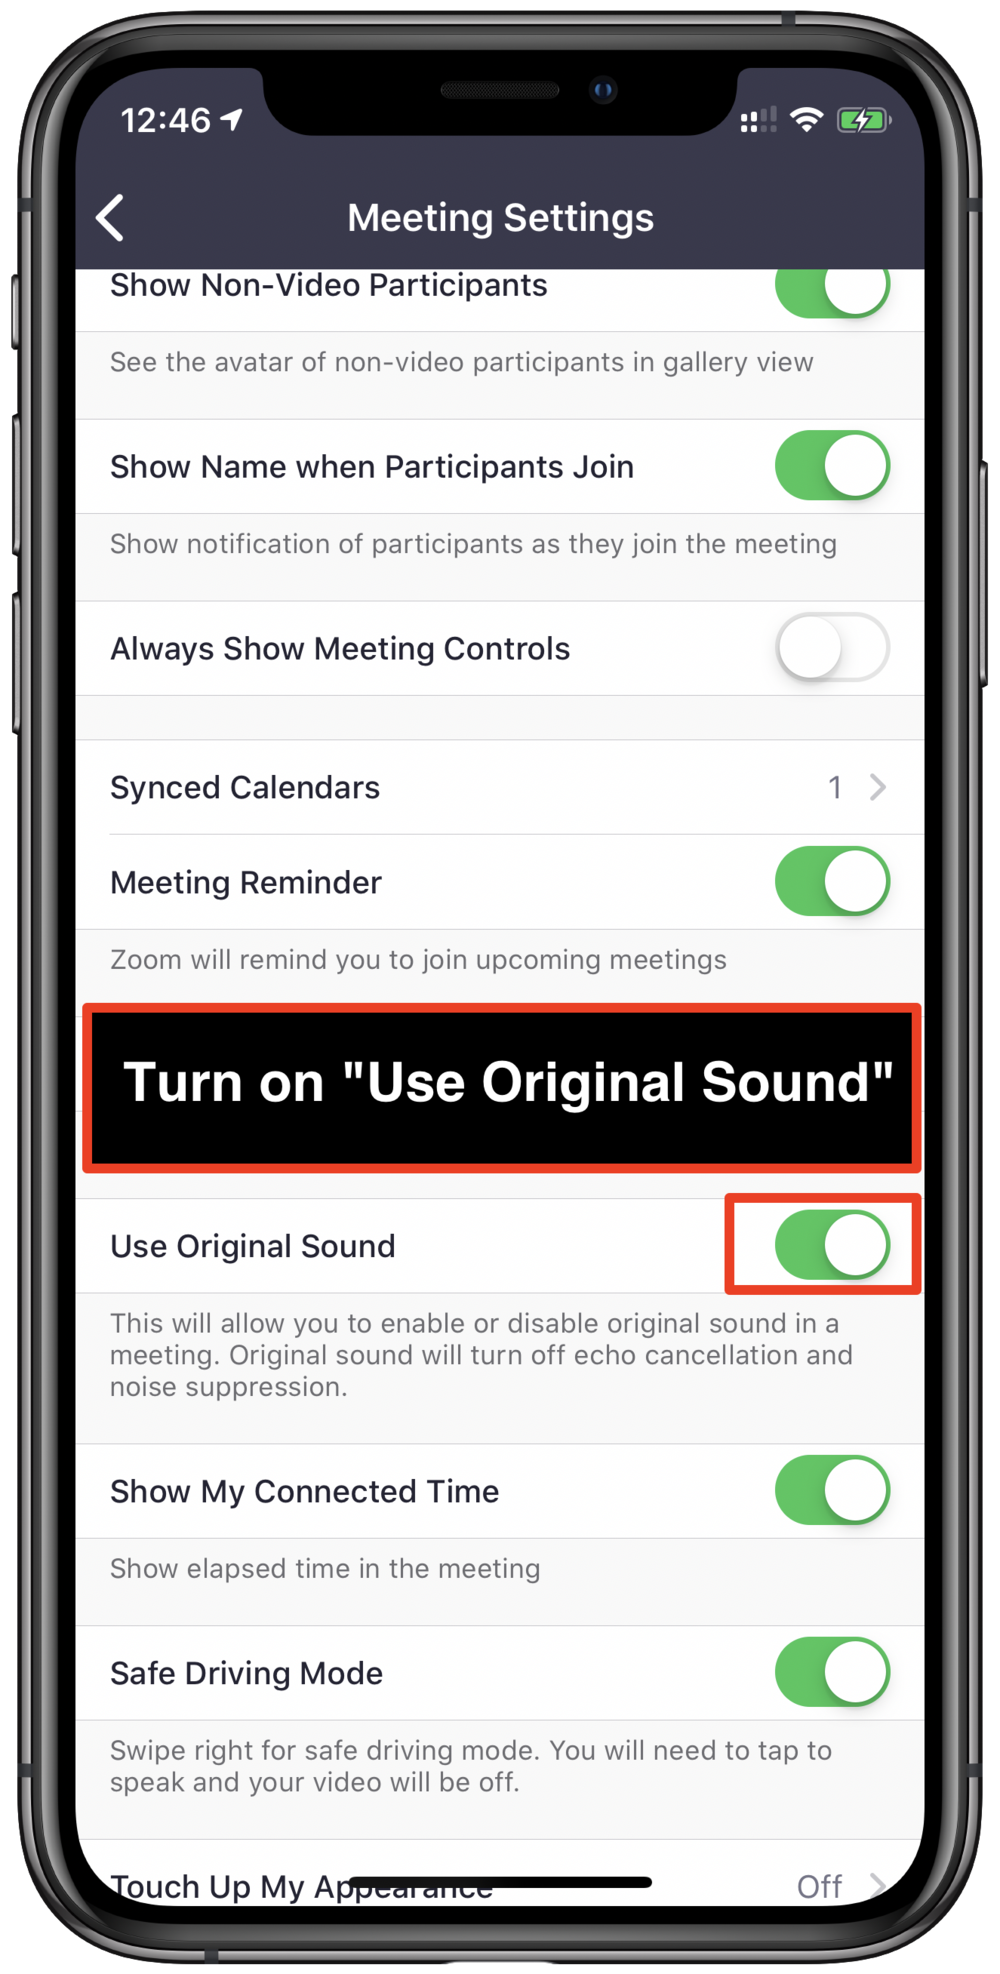 Zoom: How to turn on original sound on iPhone, iPad and Android